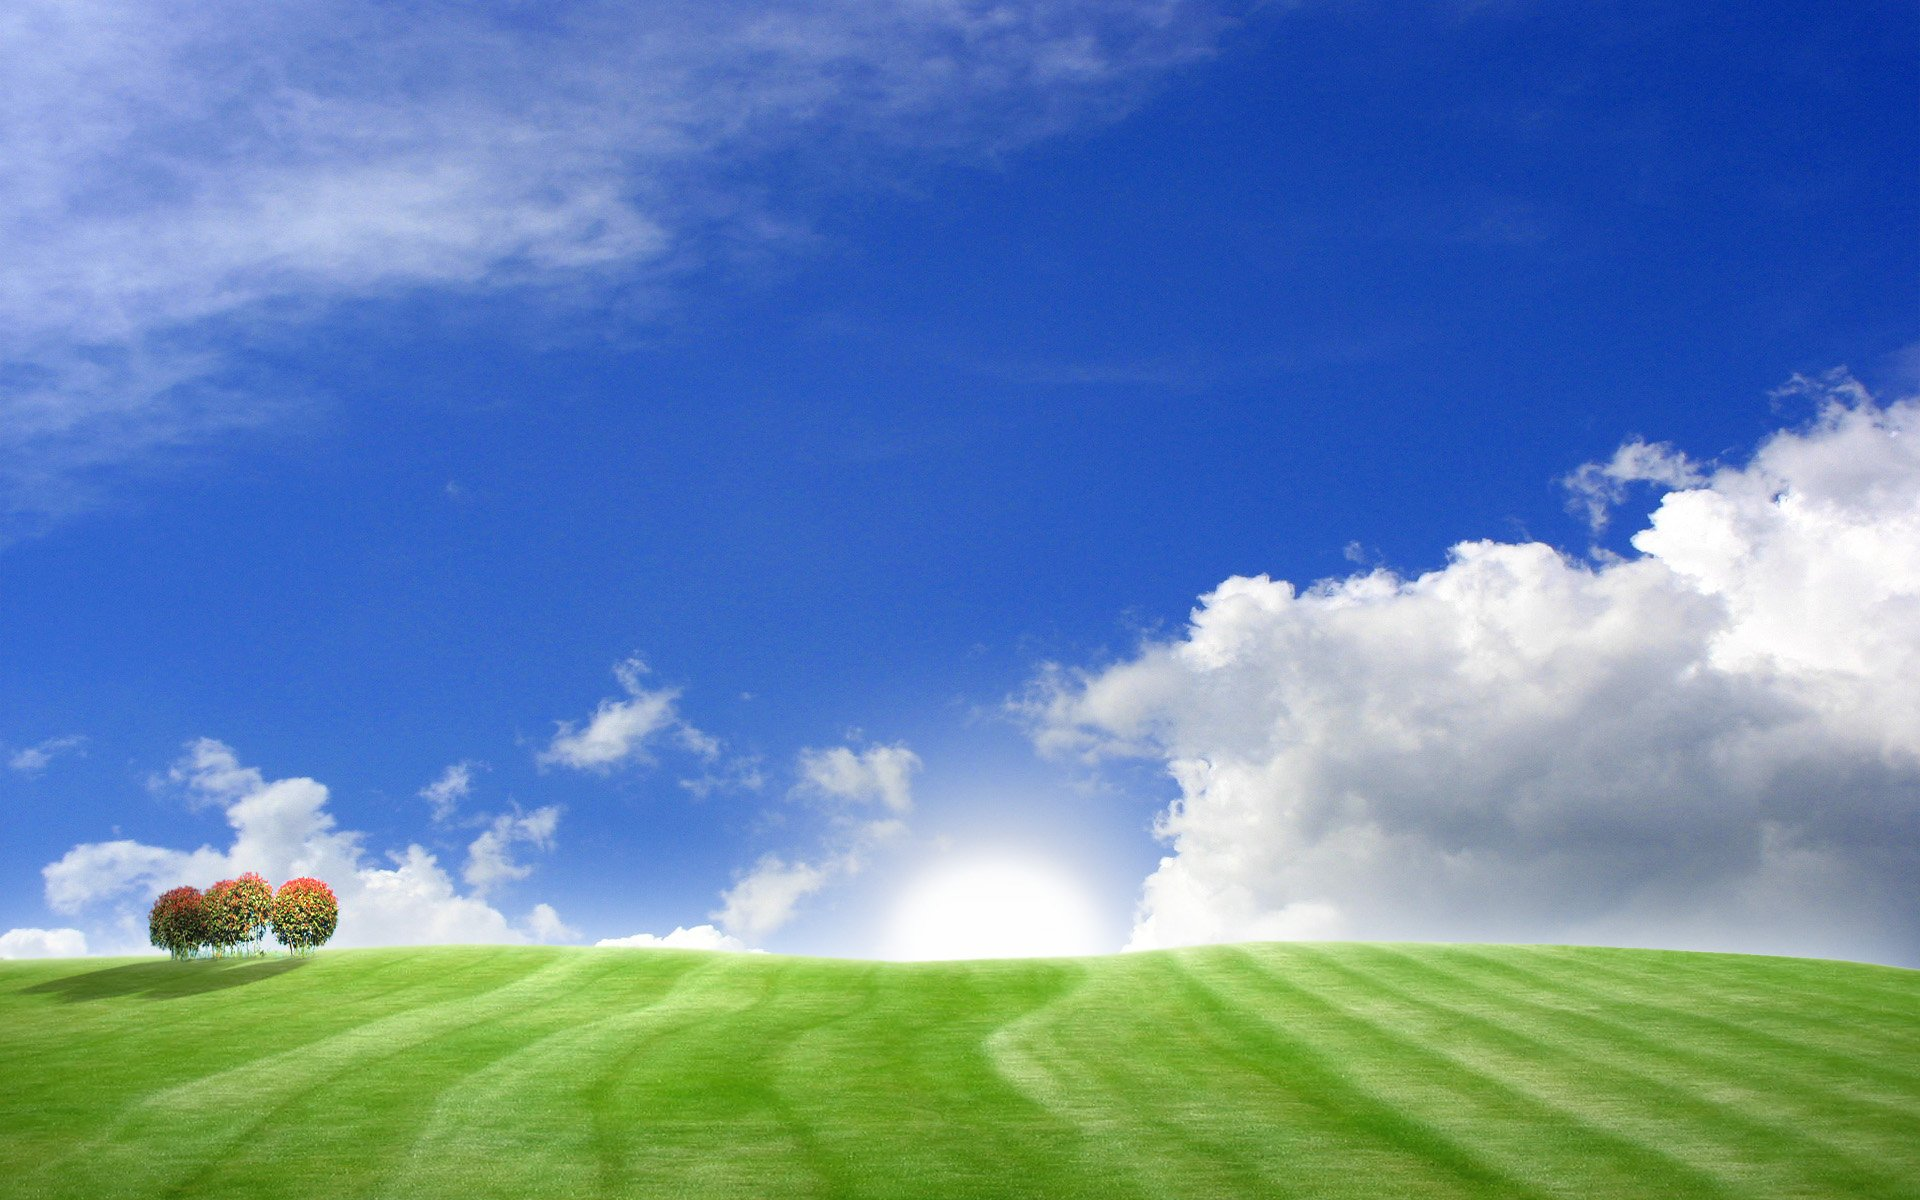 spring wallpapers category of hd wallpapers spring screensavers 1920x1200